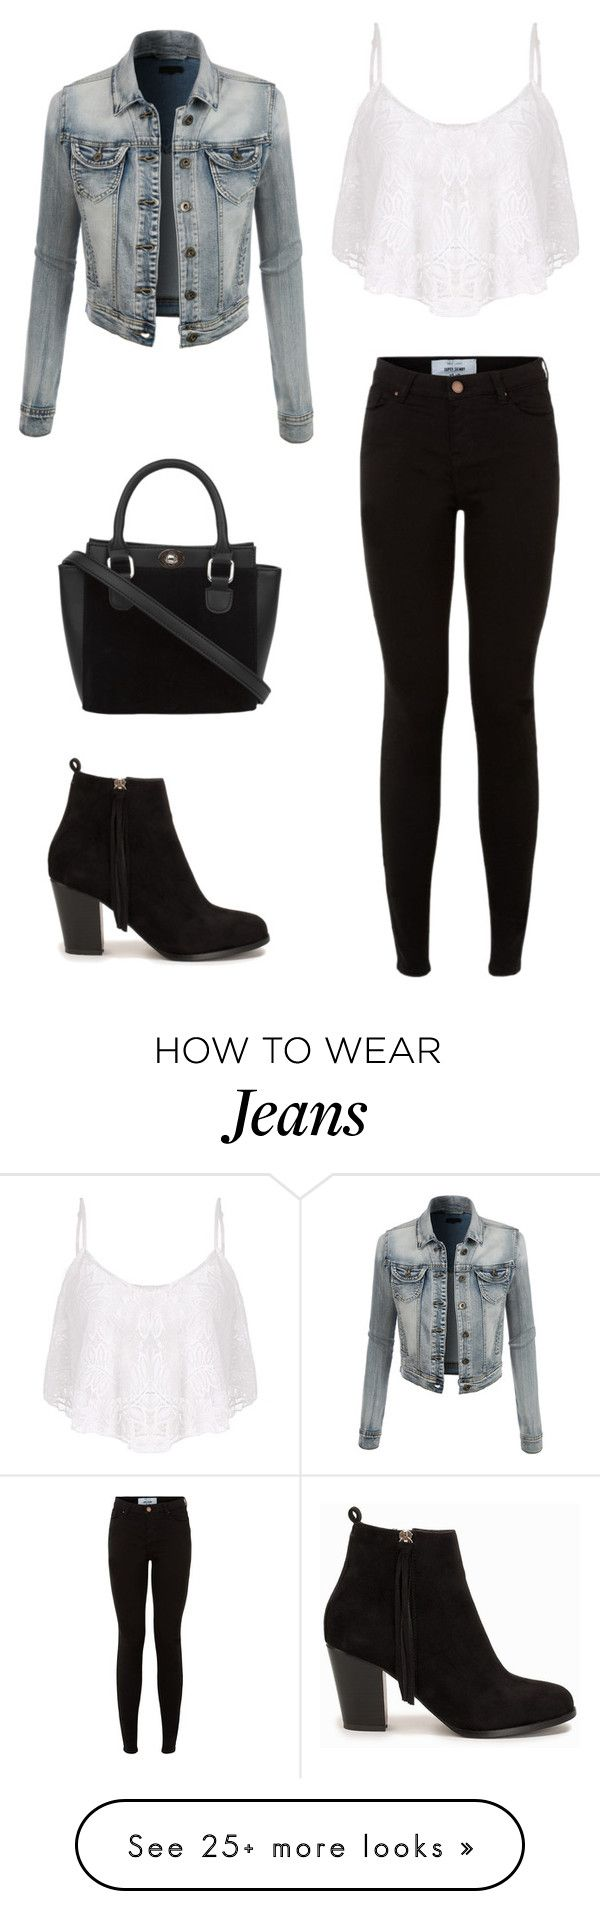 """Jeans and Black"" by hotchickhayastan on Polyvore featuring LE3NO and Nly Shoes"